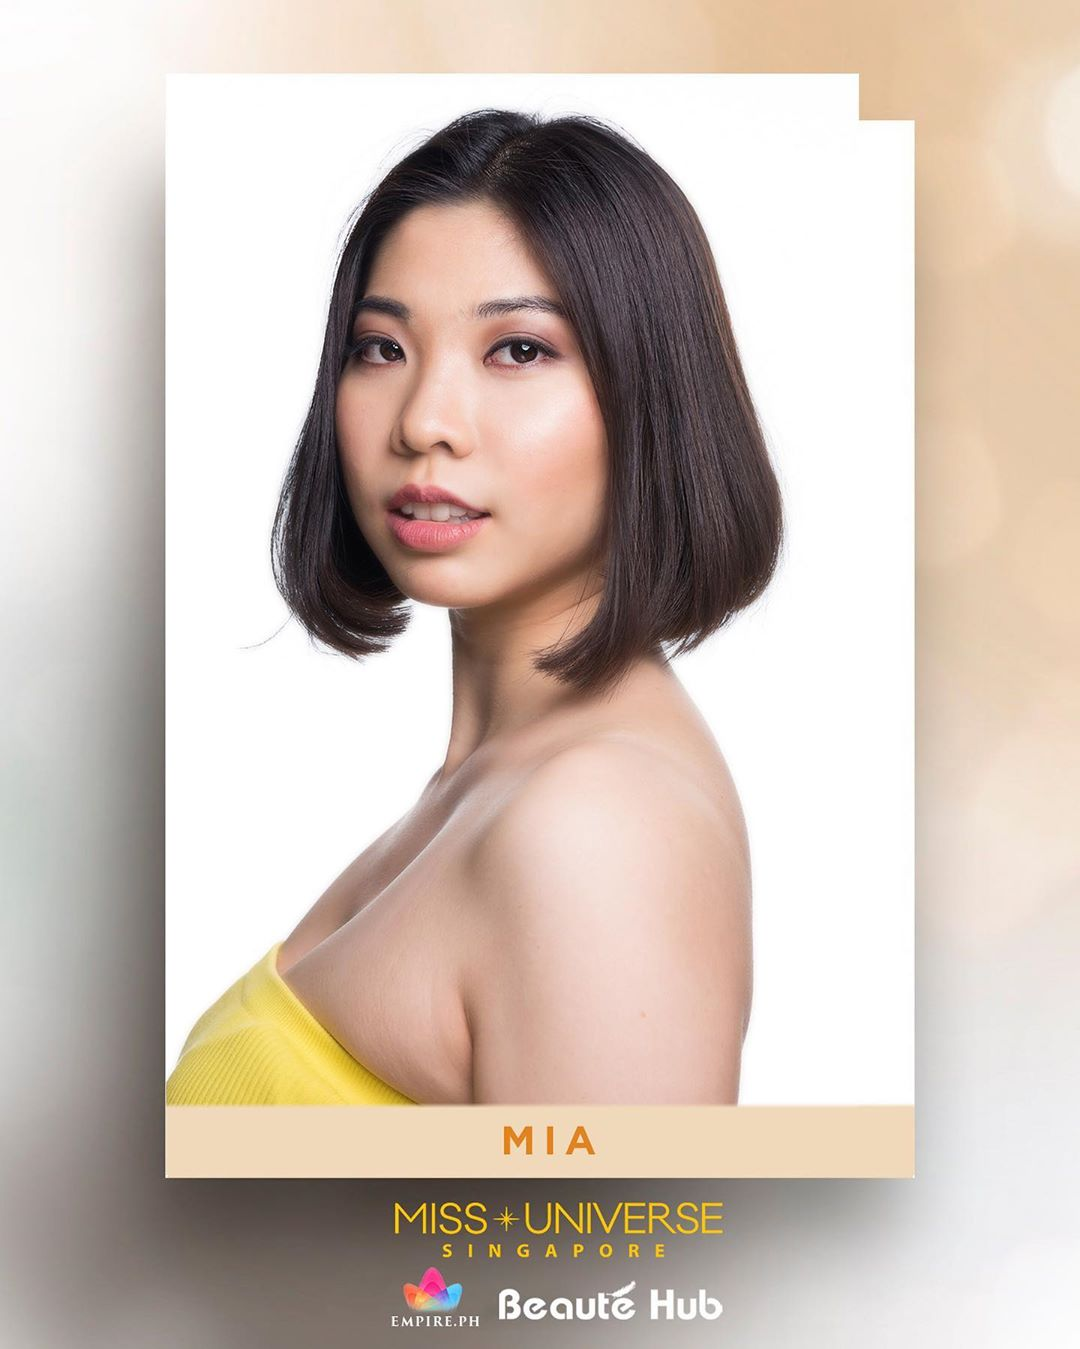 candidatas a miss universe singapore 2019. final: 17 oct. 73hgy2fy